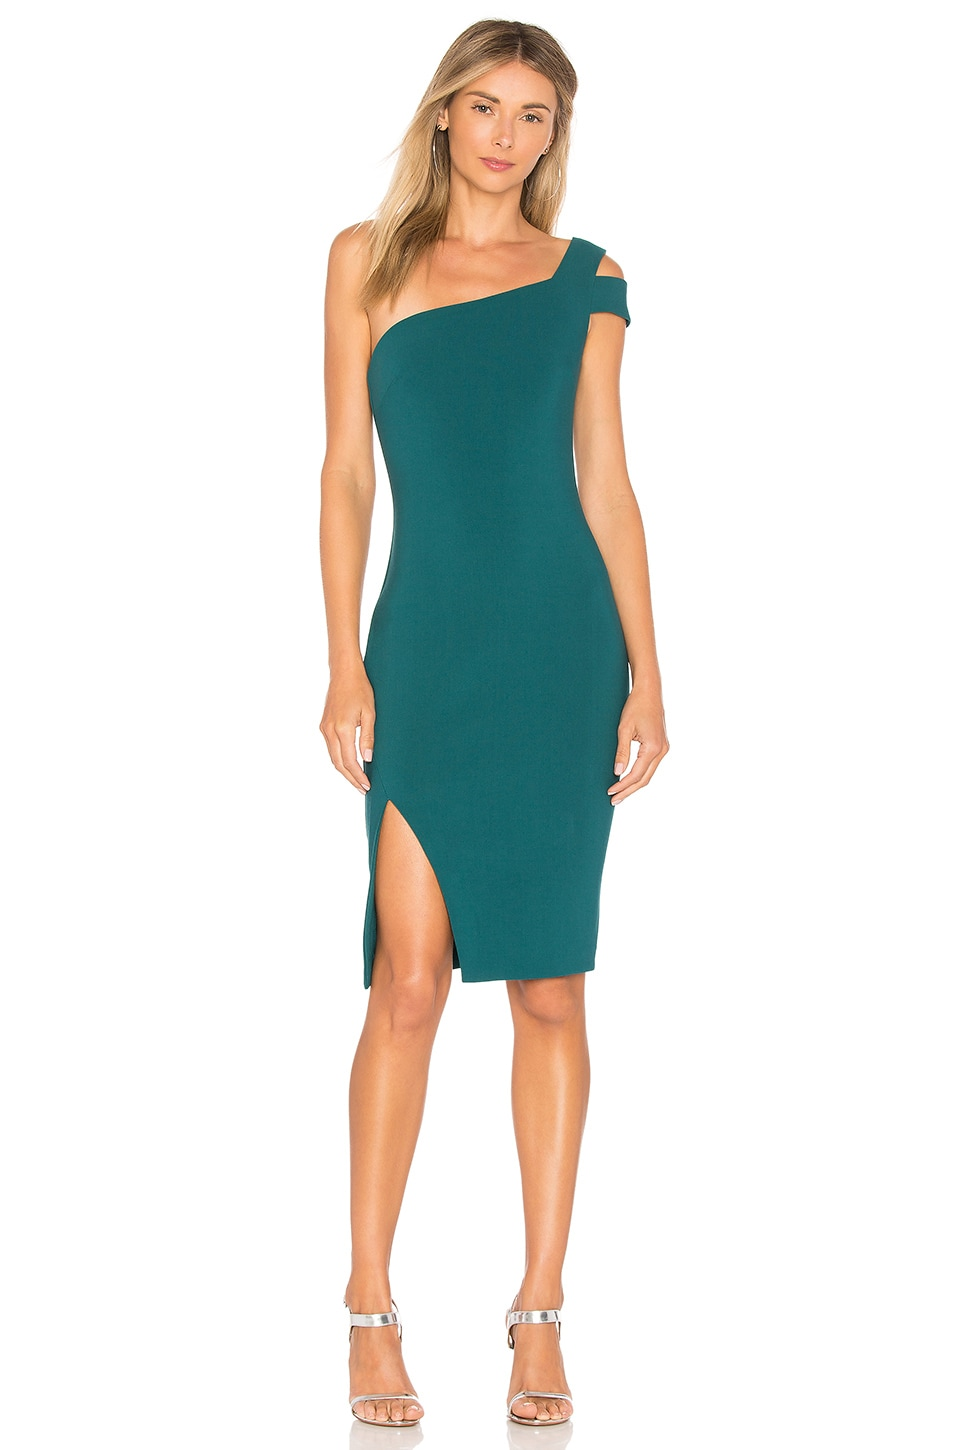 x REVOLVE Packard Dress in Green. - size 0 (also in 2,4,6) LIKELY